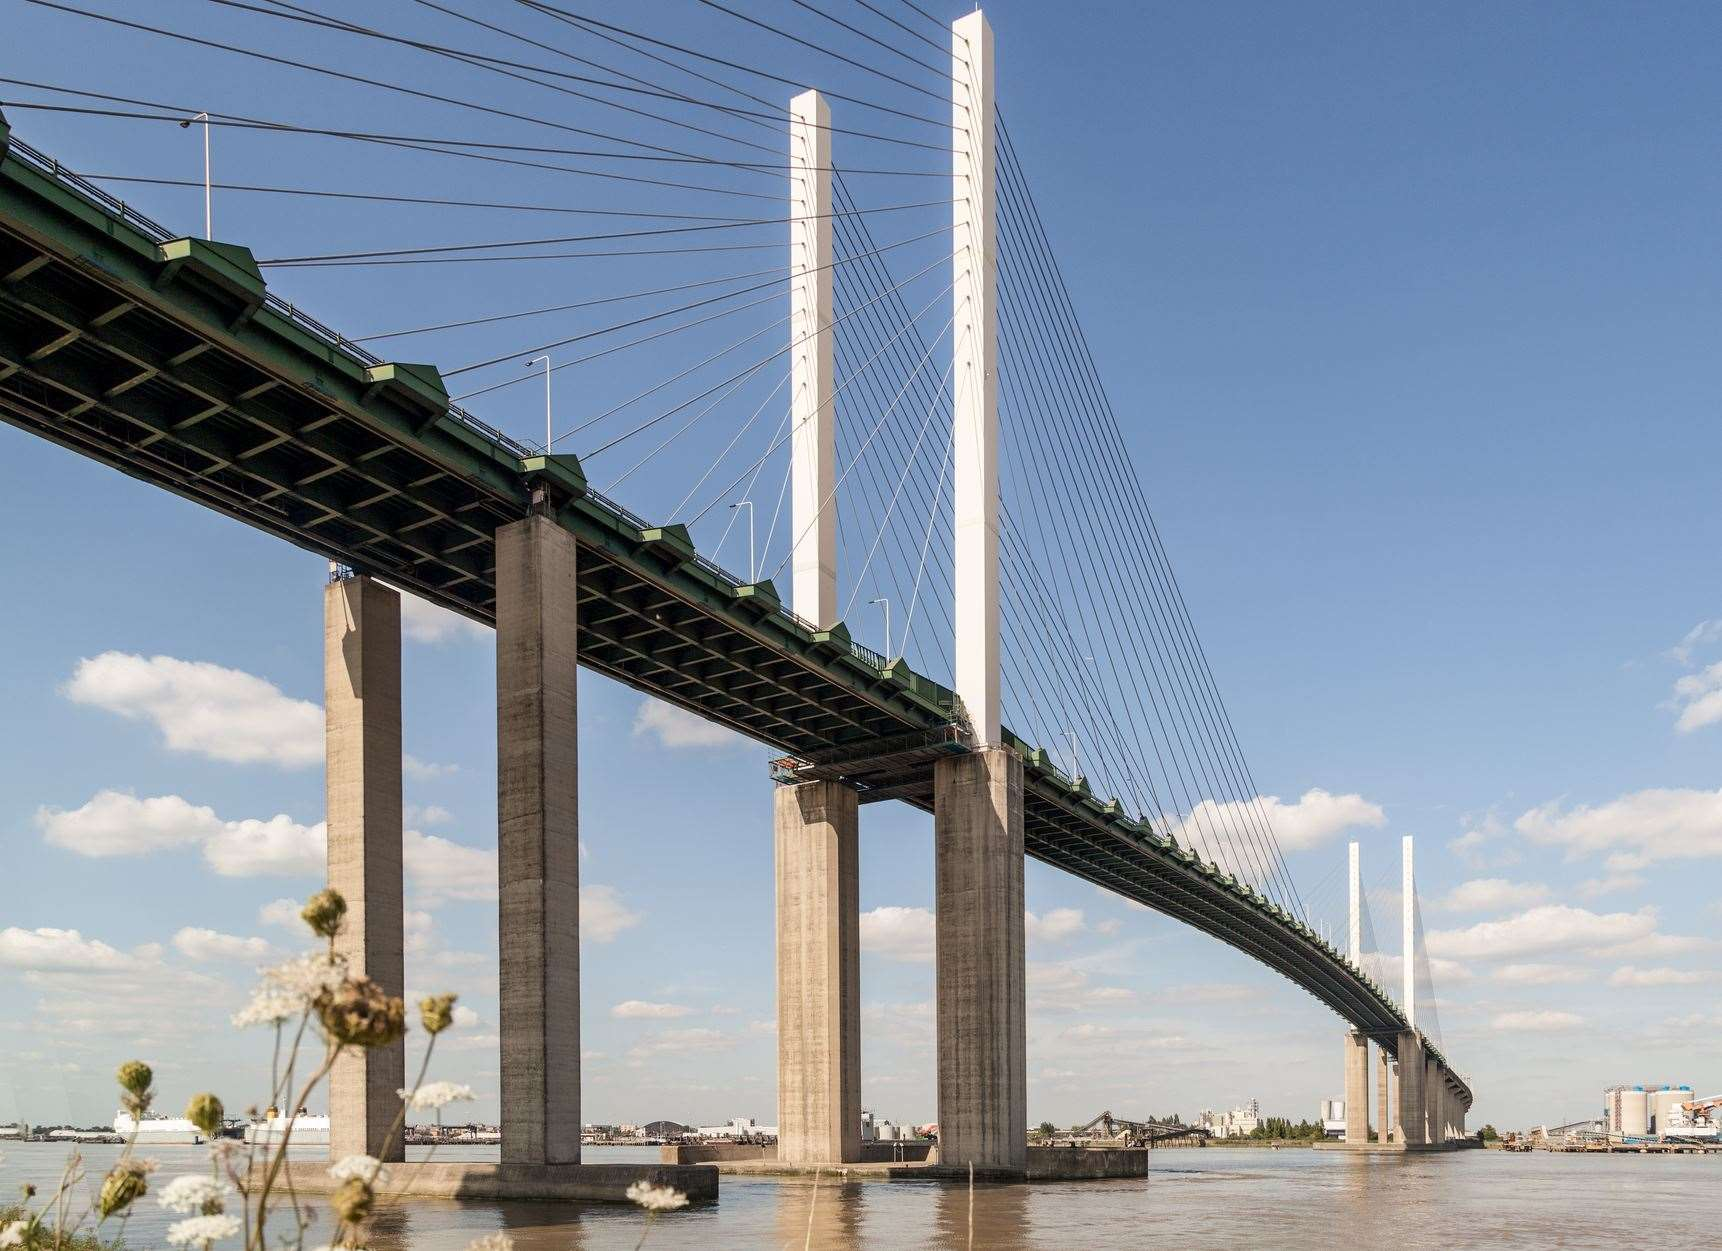 QEII Bridge over the River Thames. (10797399)